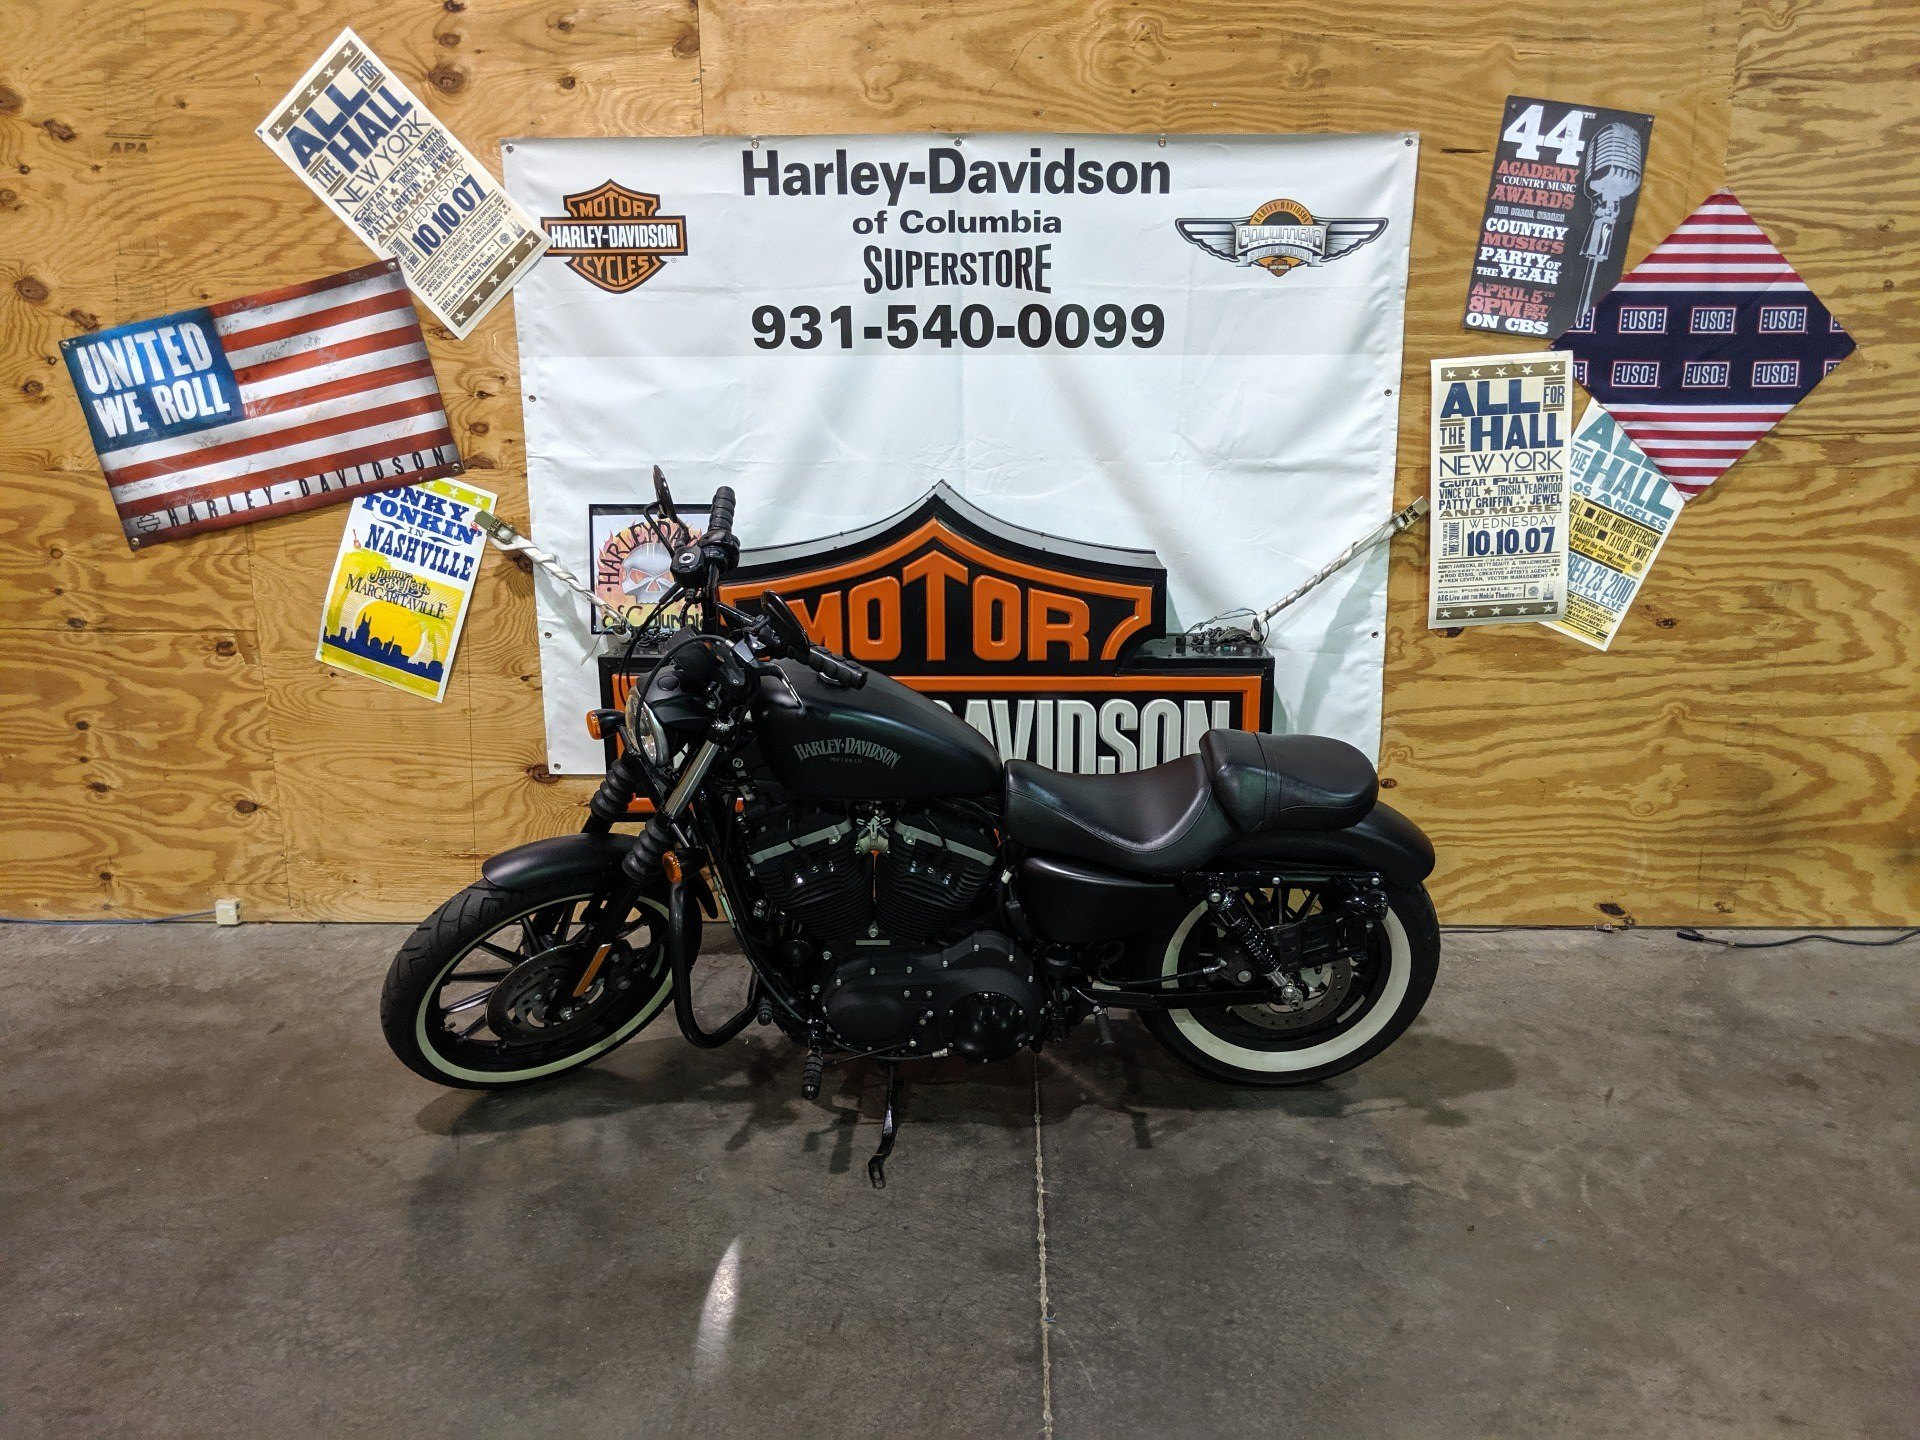 2013 Harley-Davidson XL883N in Columbia, Tennessee - Photo 5